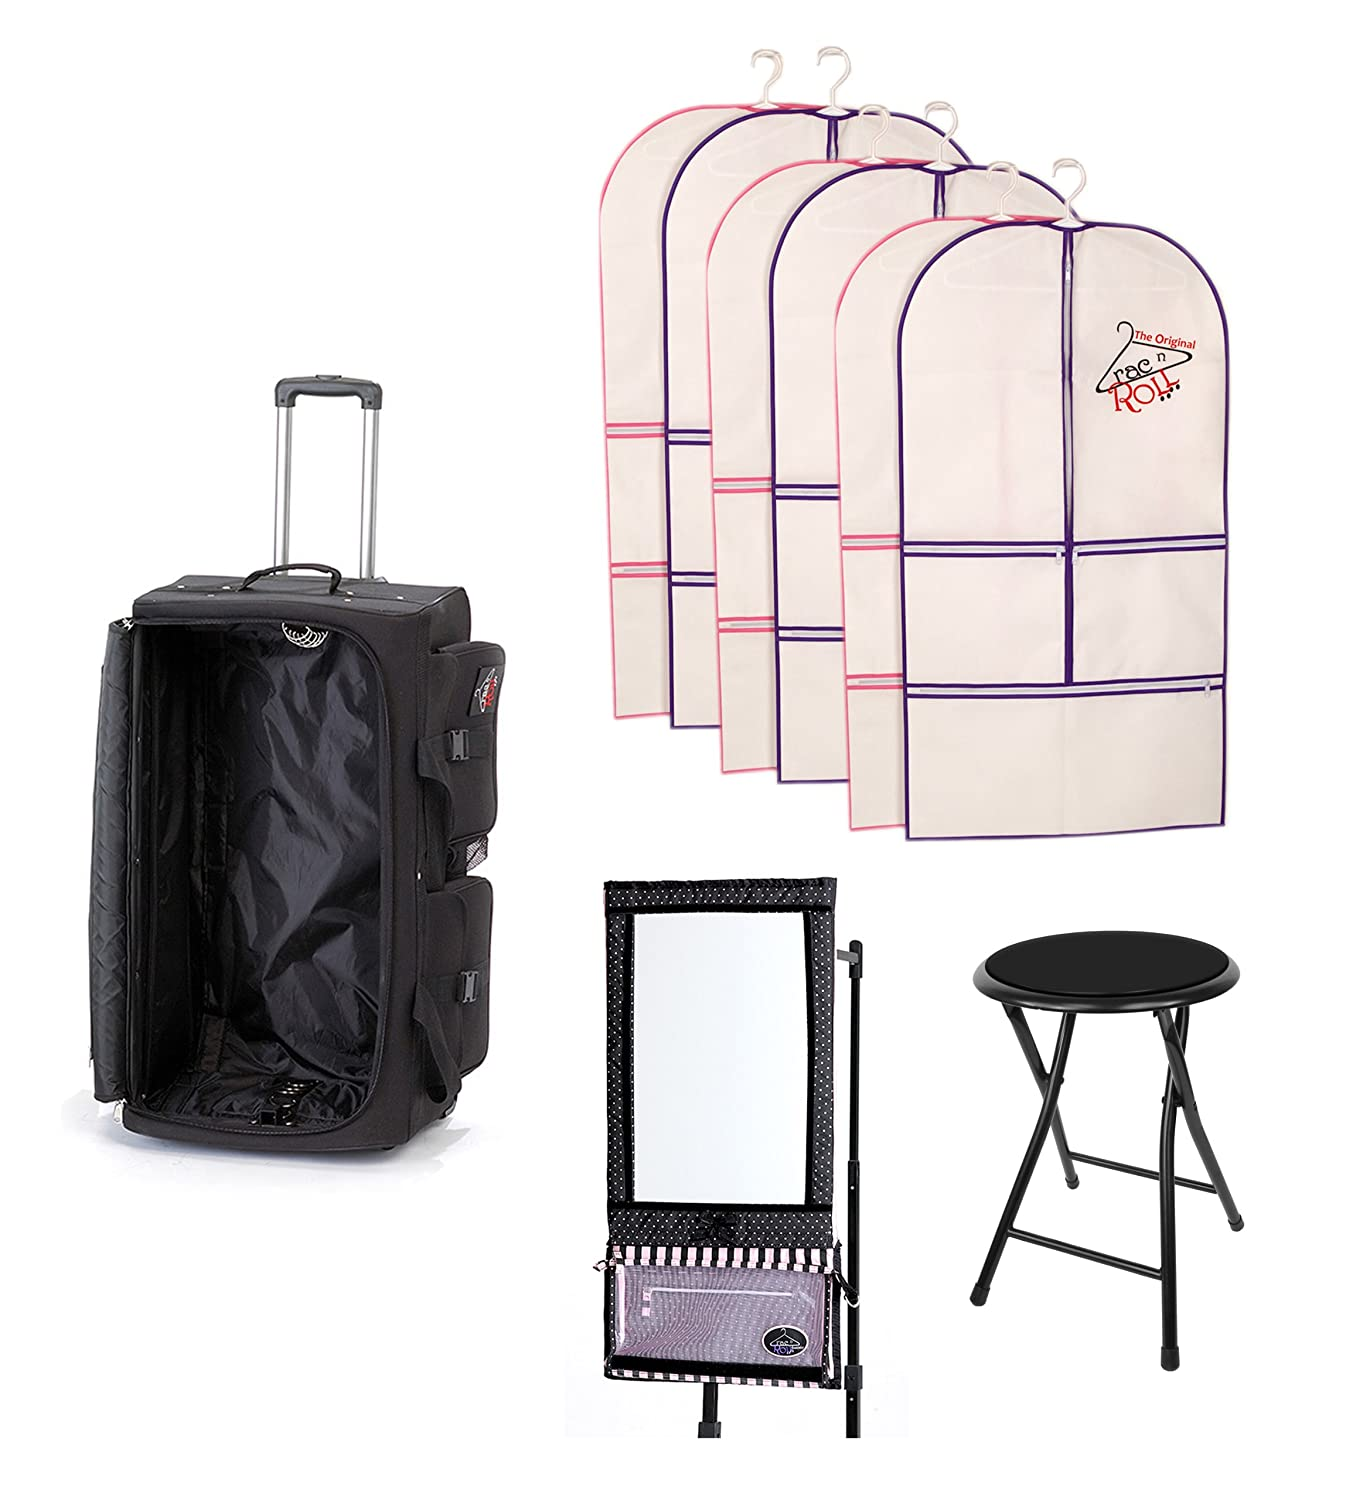 b452a00488 Ultimate Rac N Roll Dance Bag   Luggage - Includes Mirror